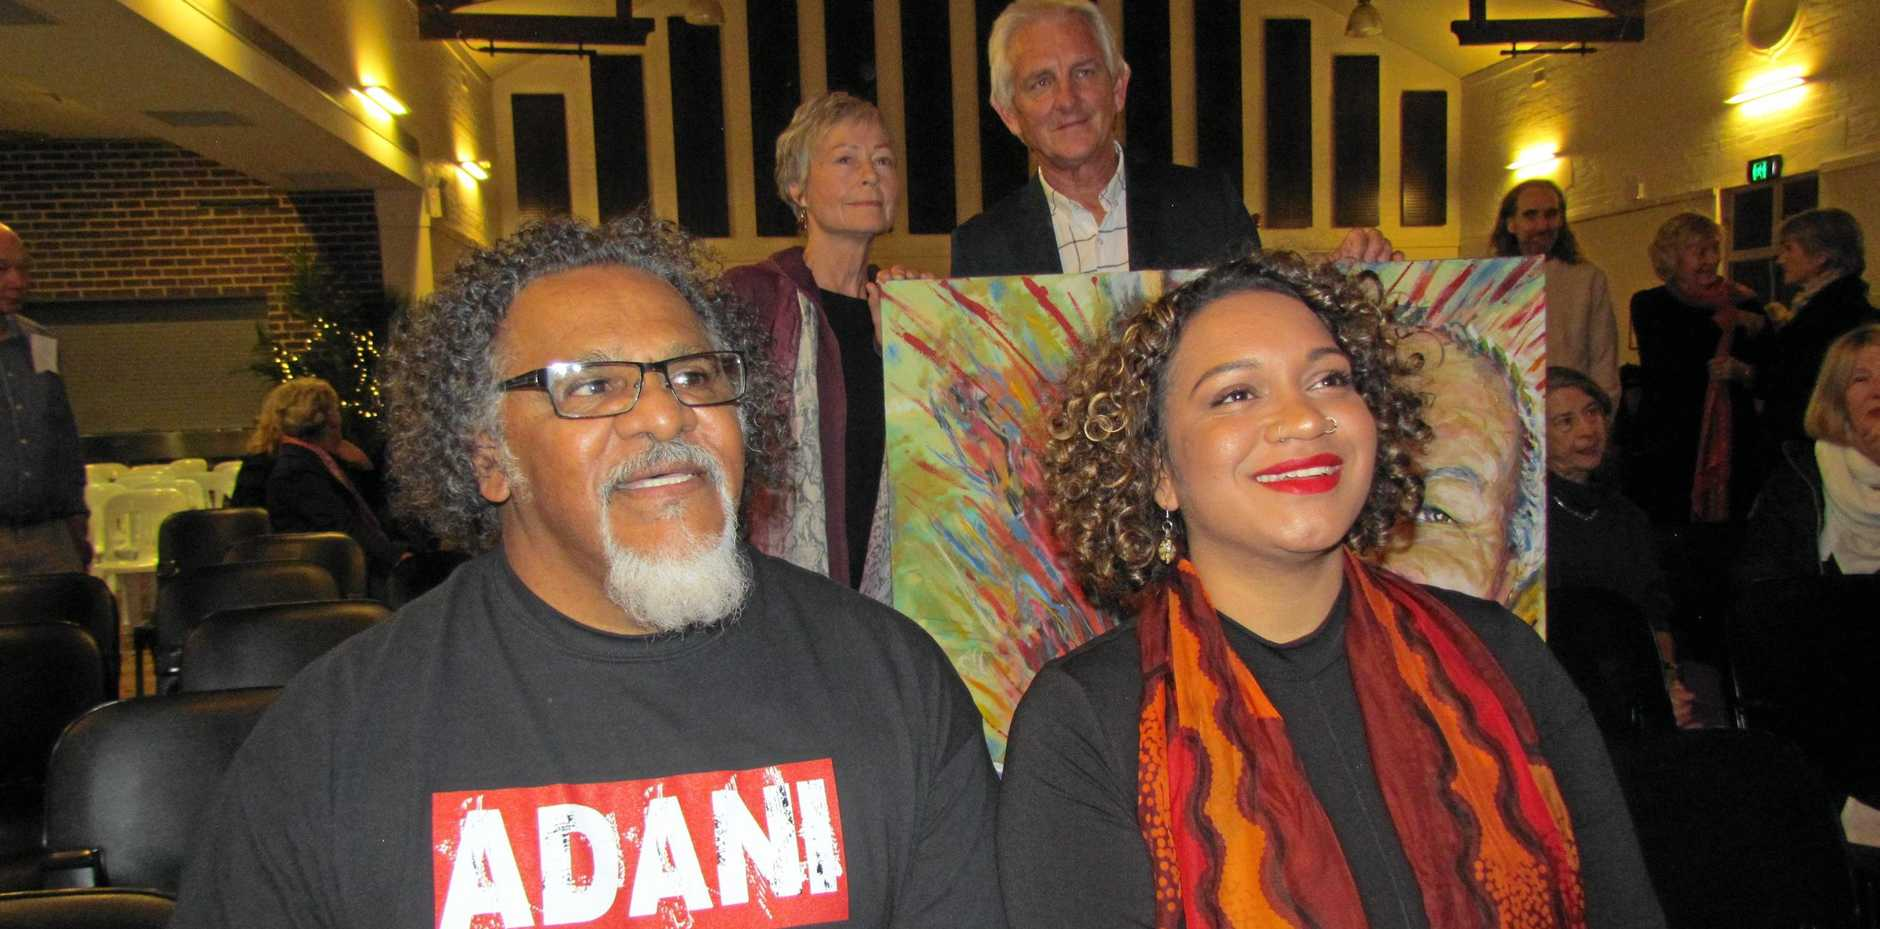 Anti-Adani mine campaigners Adrian Burragubba and Murrawah Johnson.